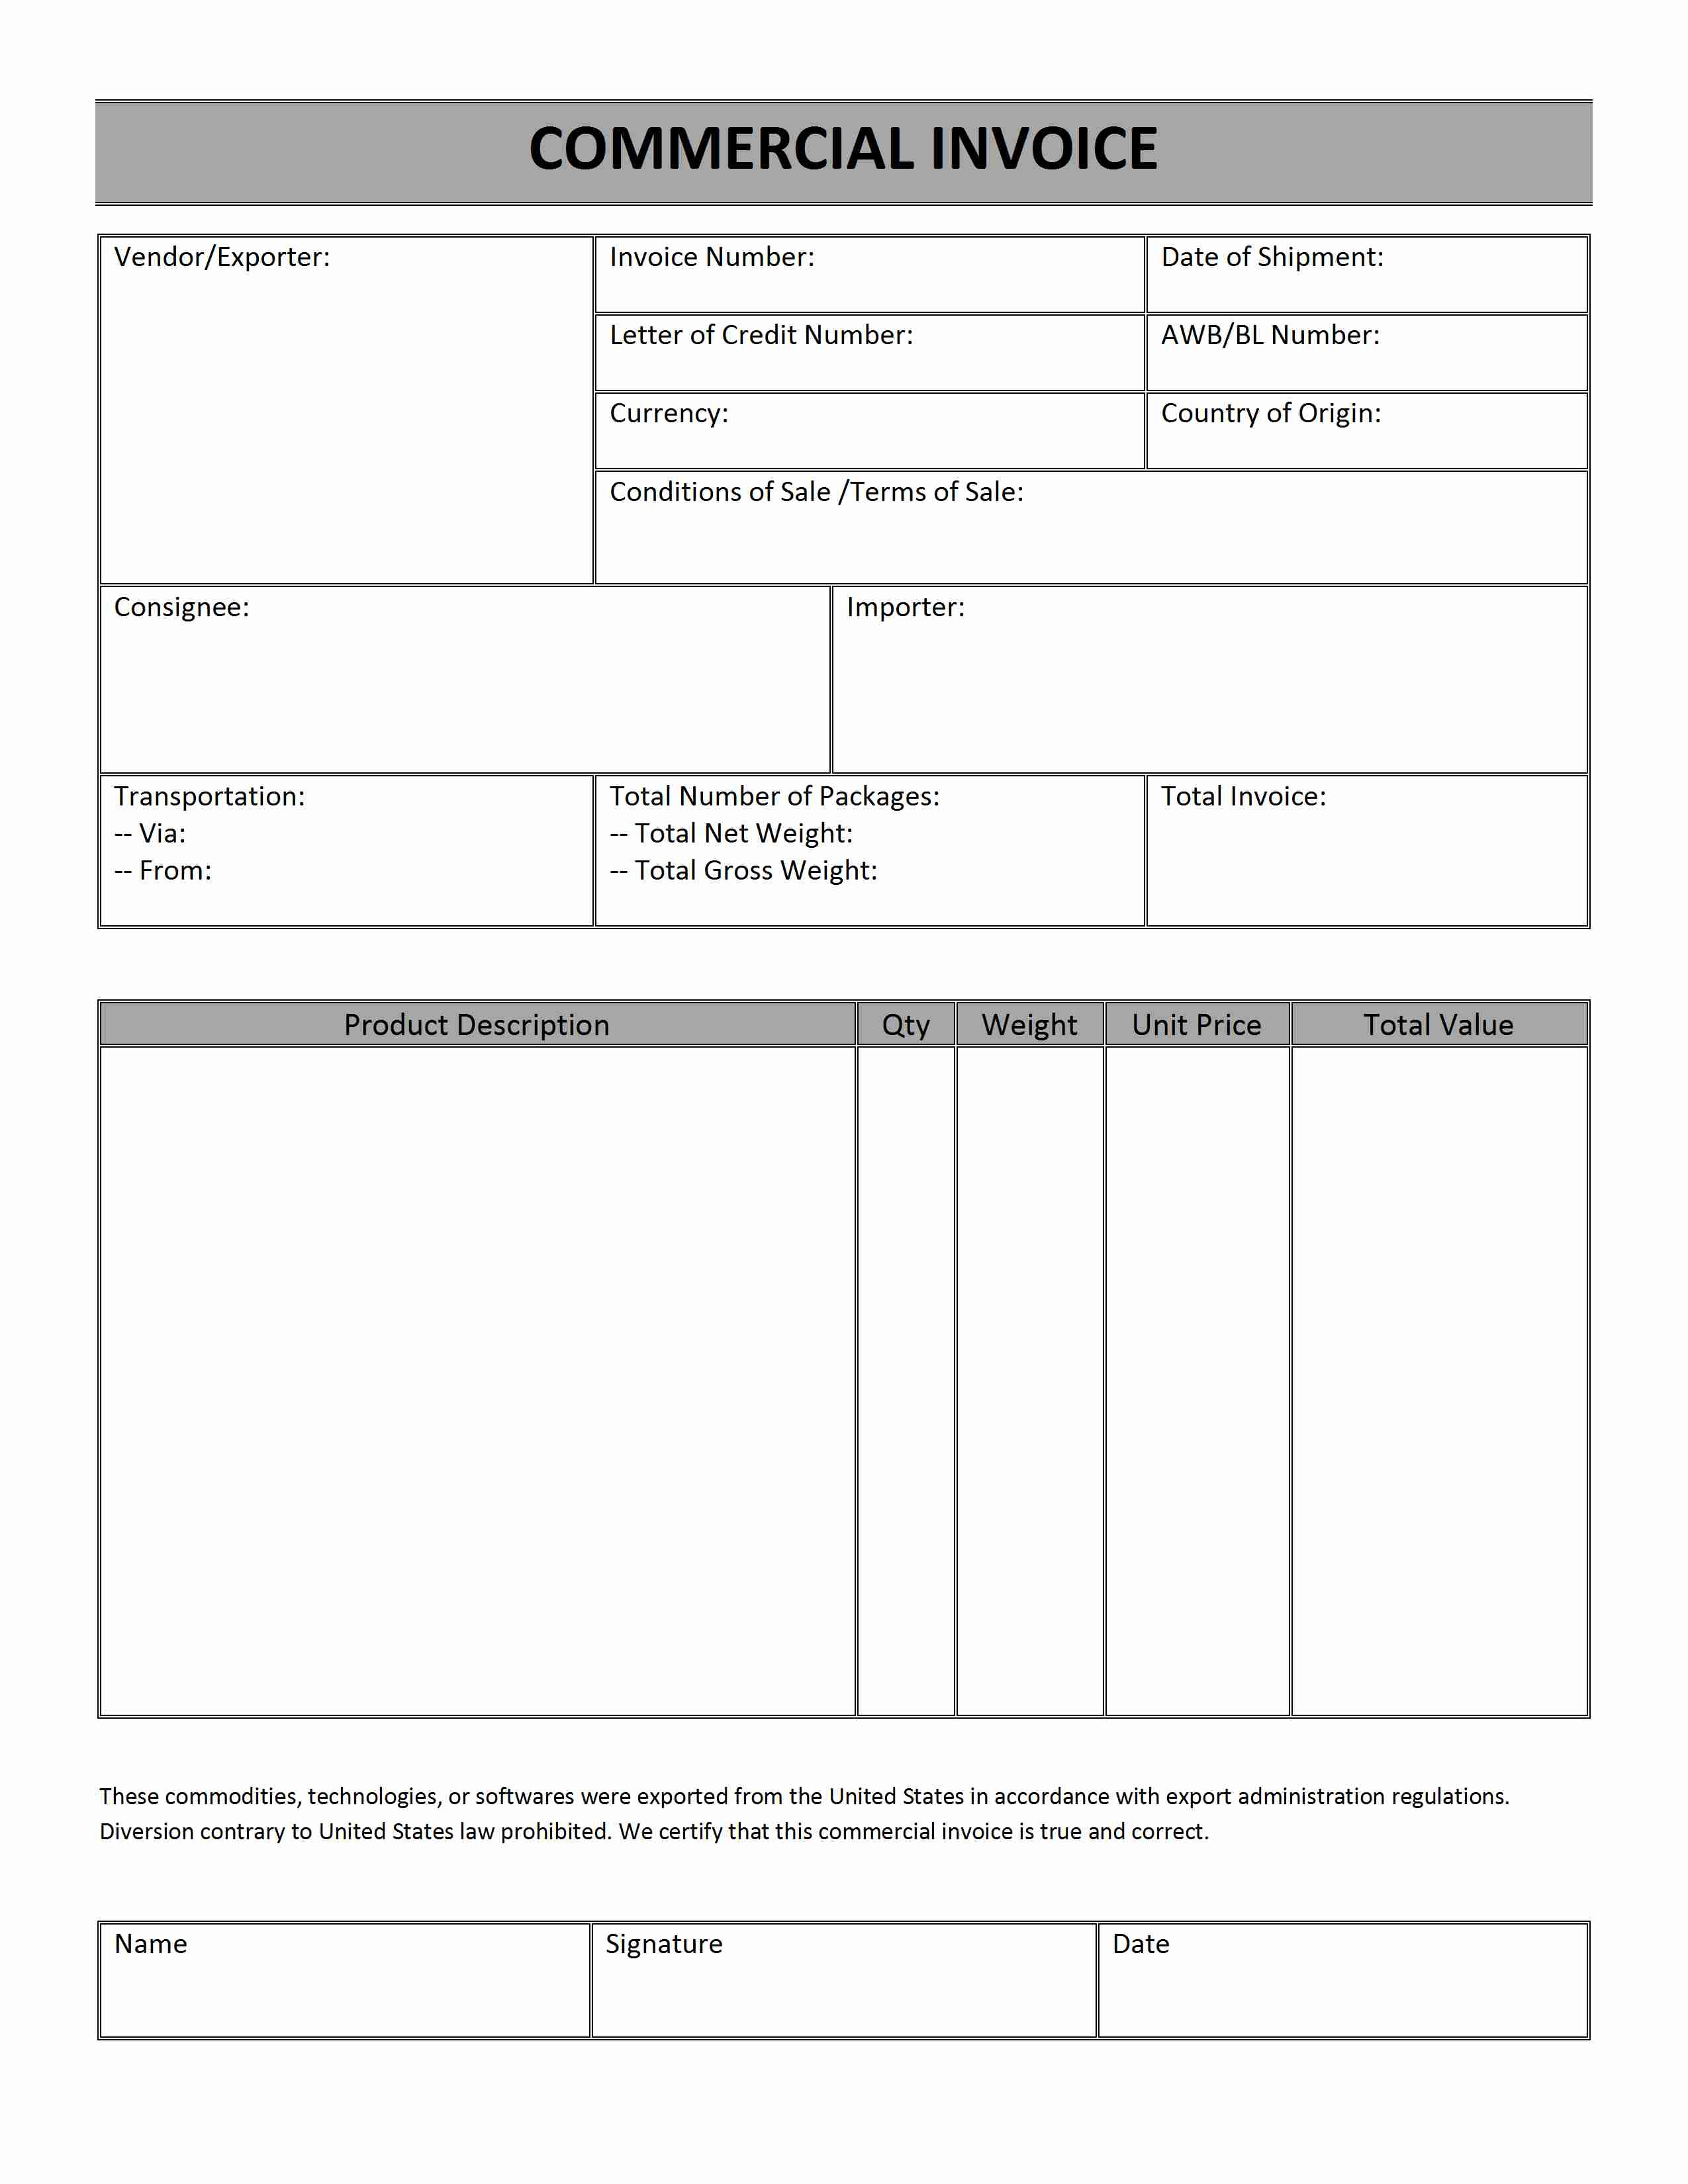 Weirdmailus  Picturesque Printable Sales Invoice Simple Invoice Form Free Invoice  With Heavenly Printable Receipt Free  Free Printable Raffle Tickets  Receipt   Printable With Awesome Maintenance Invoice Template Also Invoice Prices Of New Cars In Addition How To Make A Business Invoice And Generic Invoice Template Excel As Well As Self Employed Invoice Additionally Free Printable Invoices Pdf From Happytomco With Weirdmailus  Heavenly Printable Sales Invoice Simple Invoice Form Free Invoice  With Awesome Printable Receipt Free  Free Printable Raffle Tickets  Receipt   Printable And Picturesque Maintenance Invoice Template Also Invoice Prices Of New Cars In Addition How To Make A Business Invoice From Happytomco